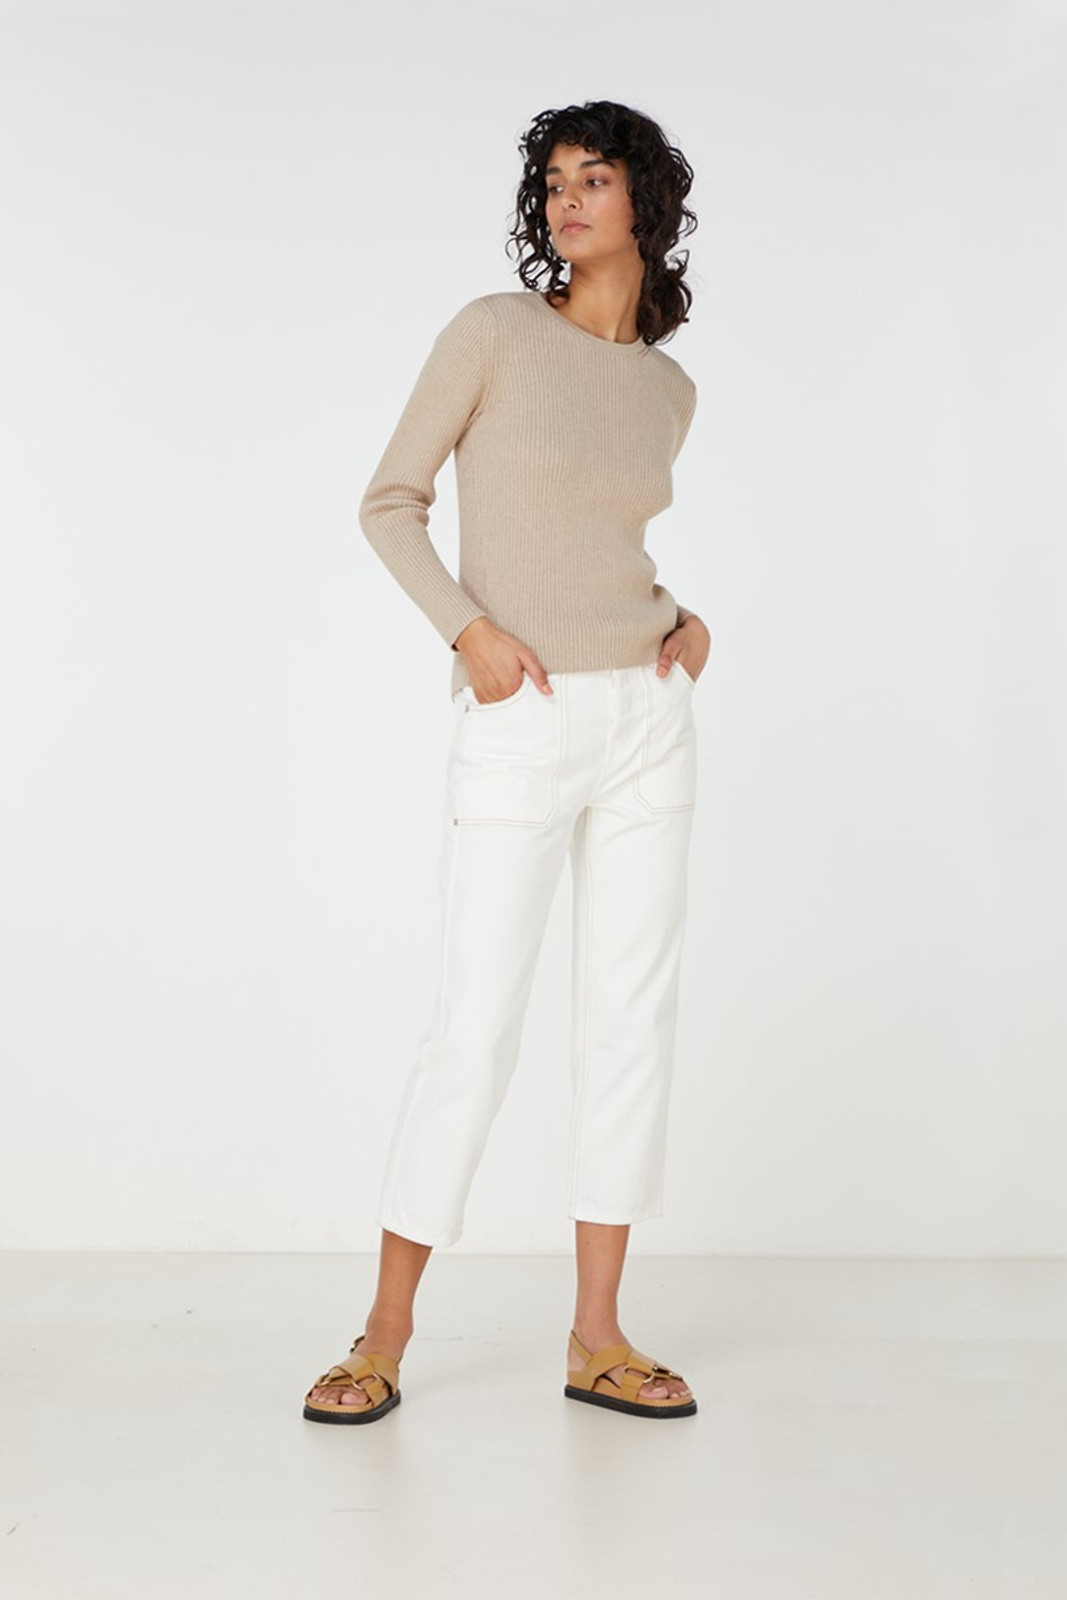 Elka Collective Houston Knit Neutrals  2